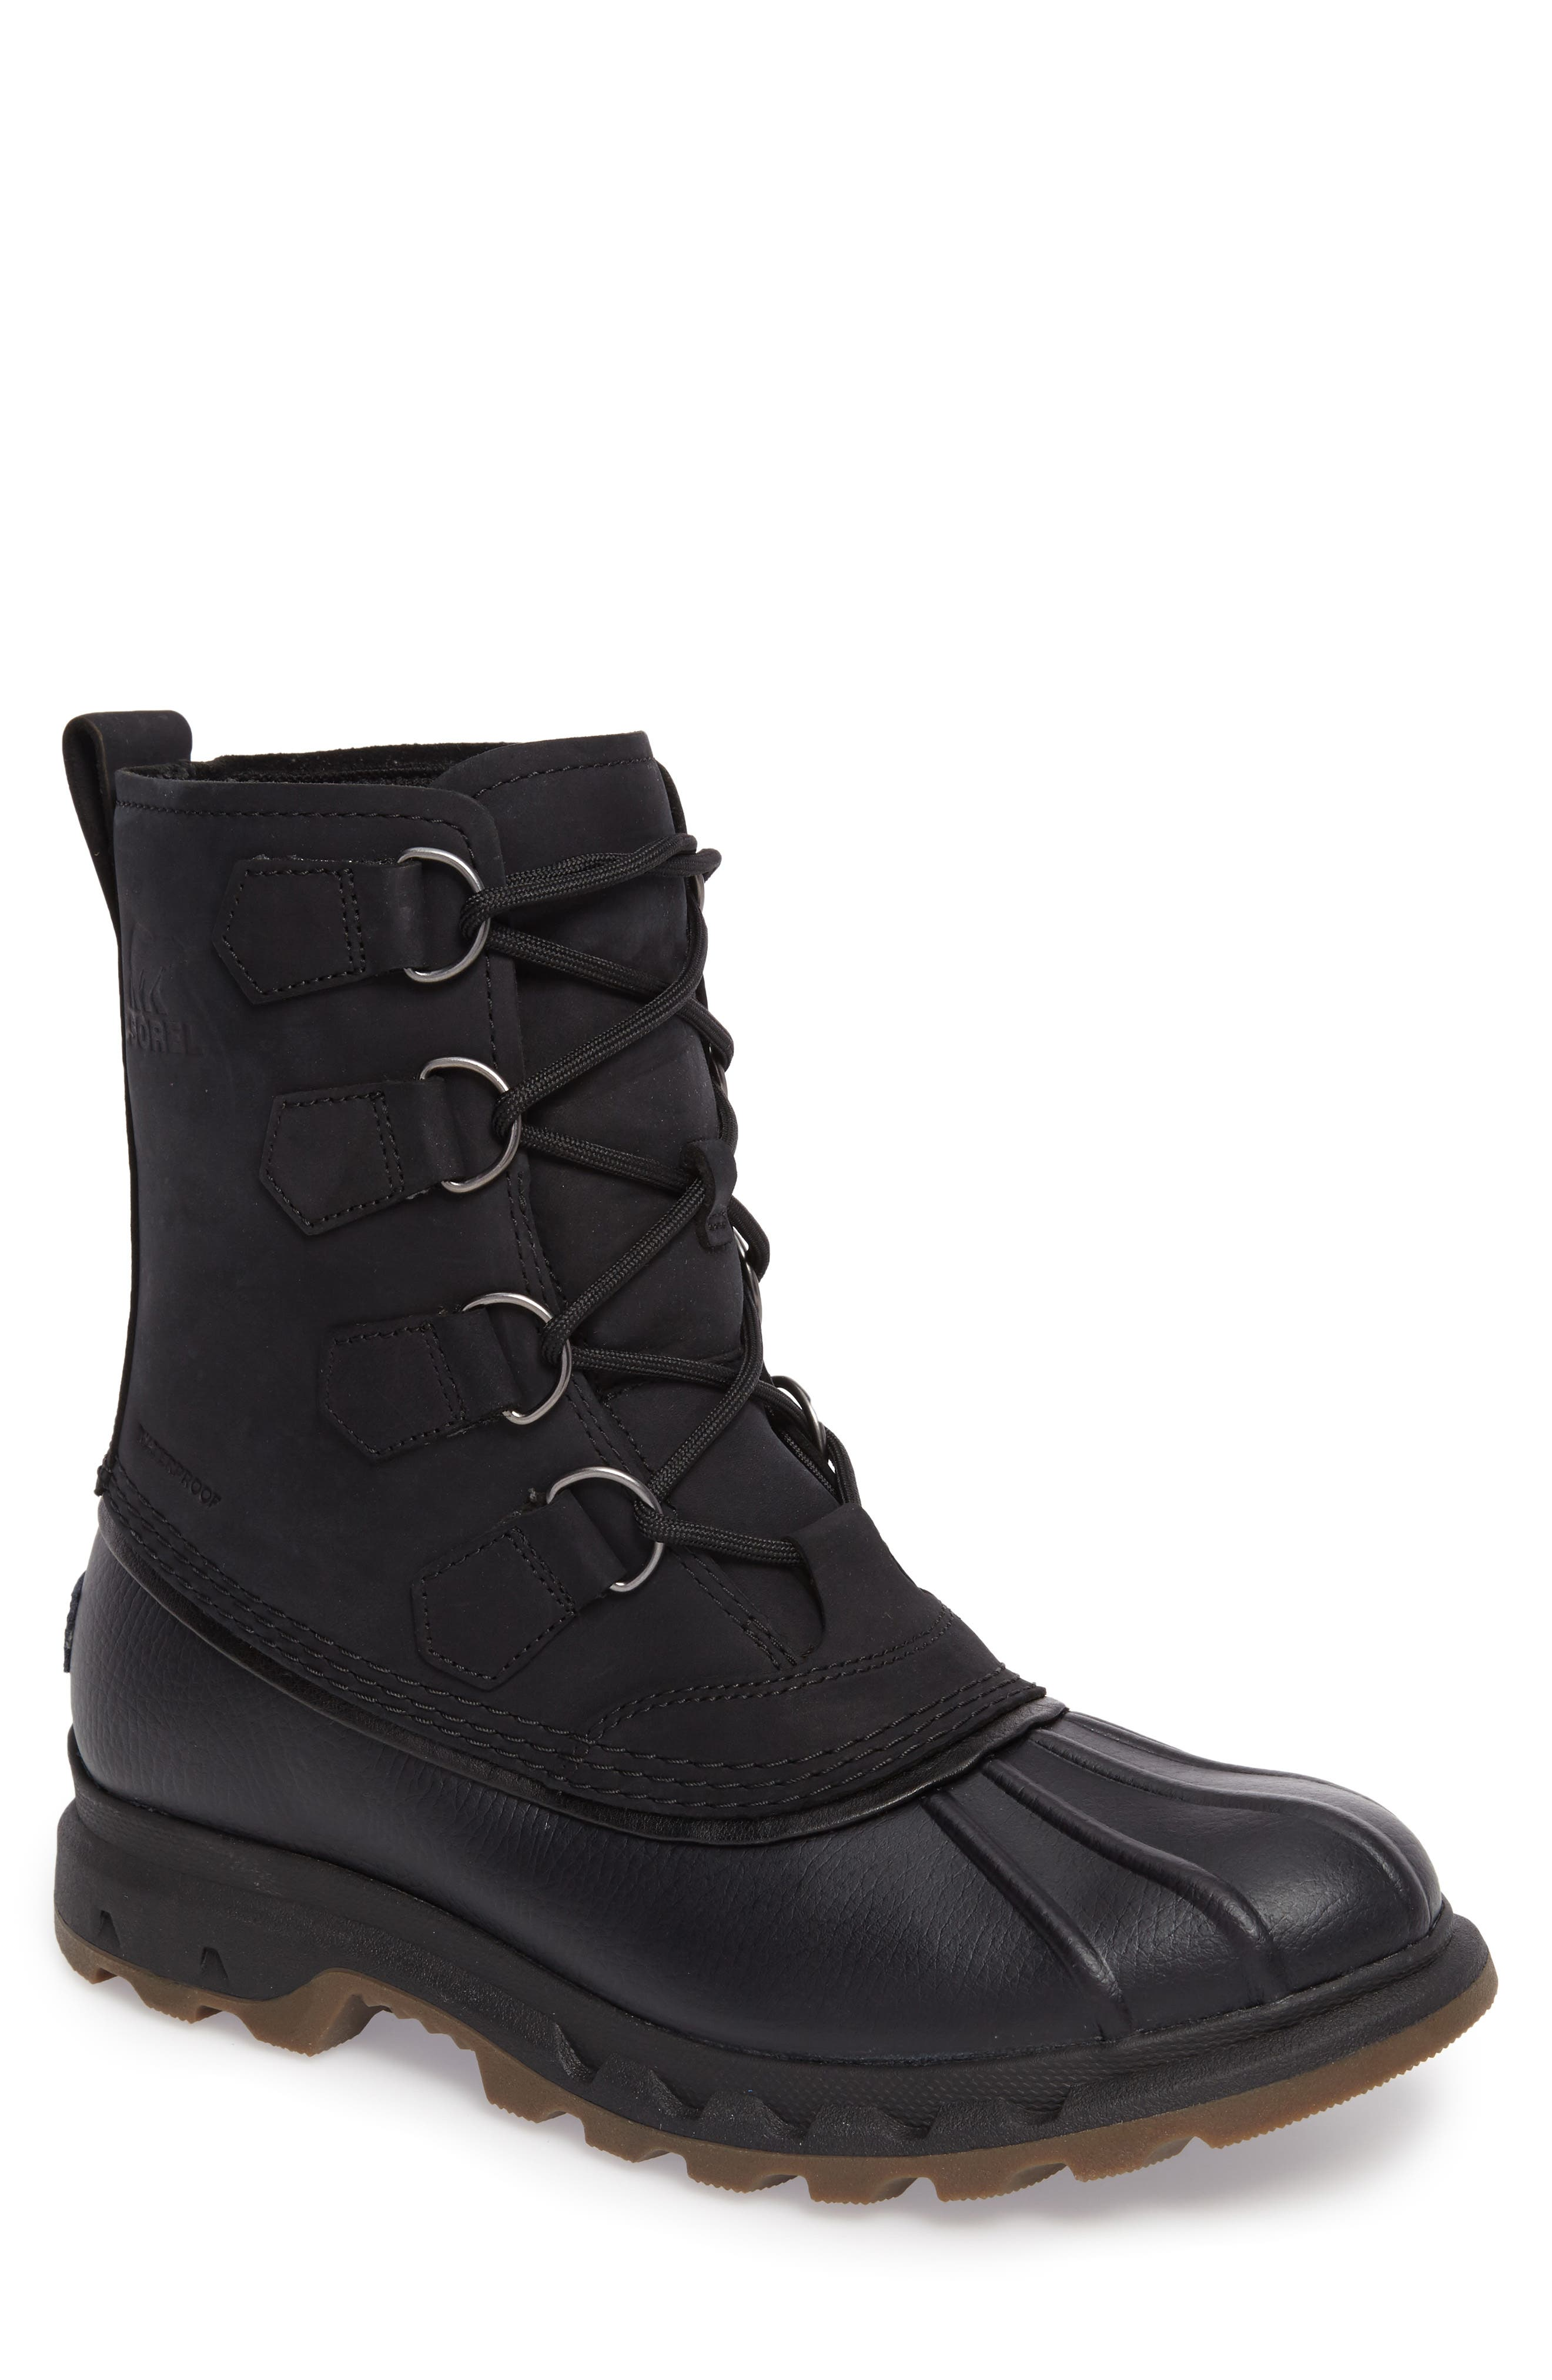 Sorel Portzman Classic Rain Boot (Men)